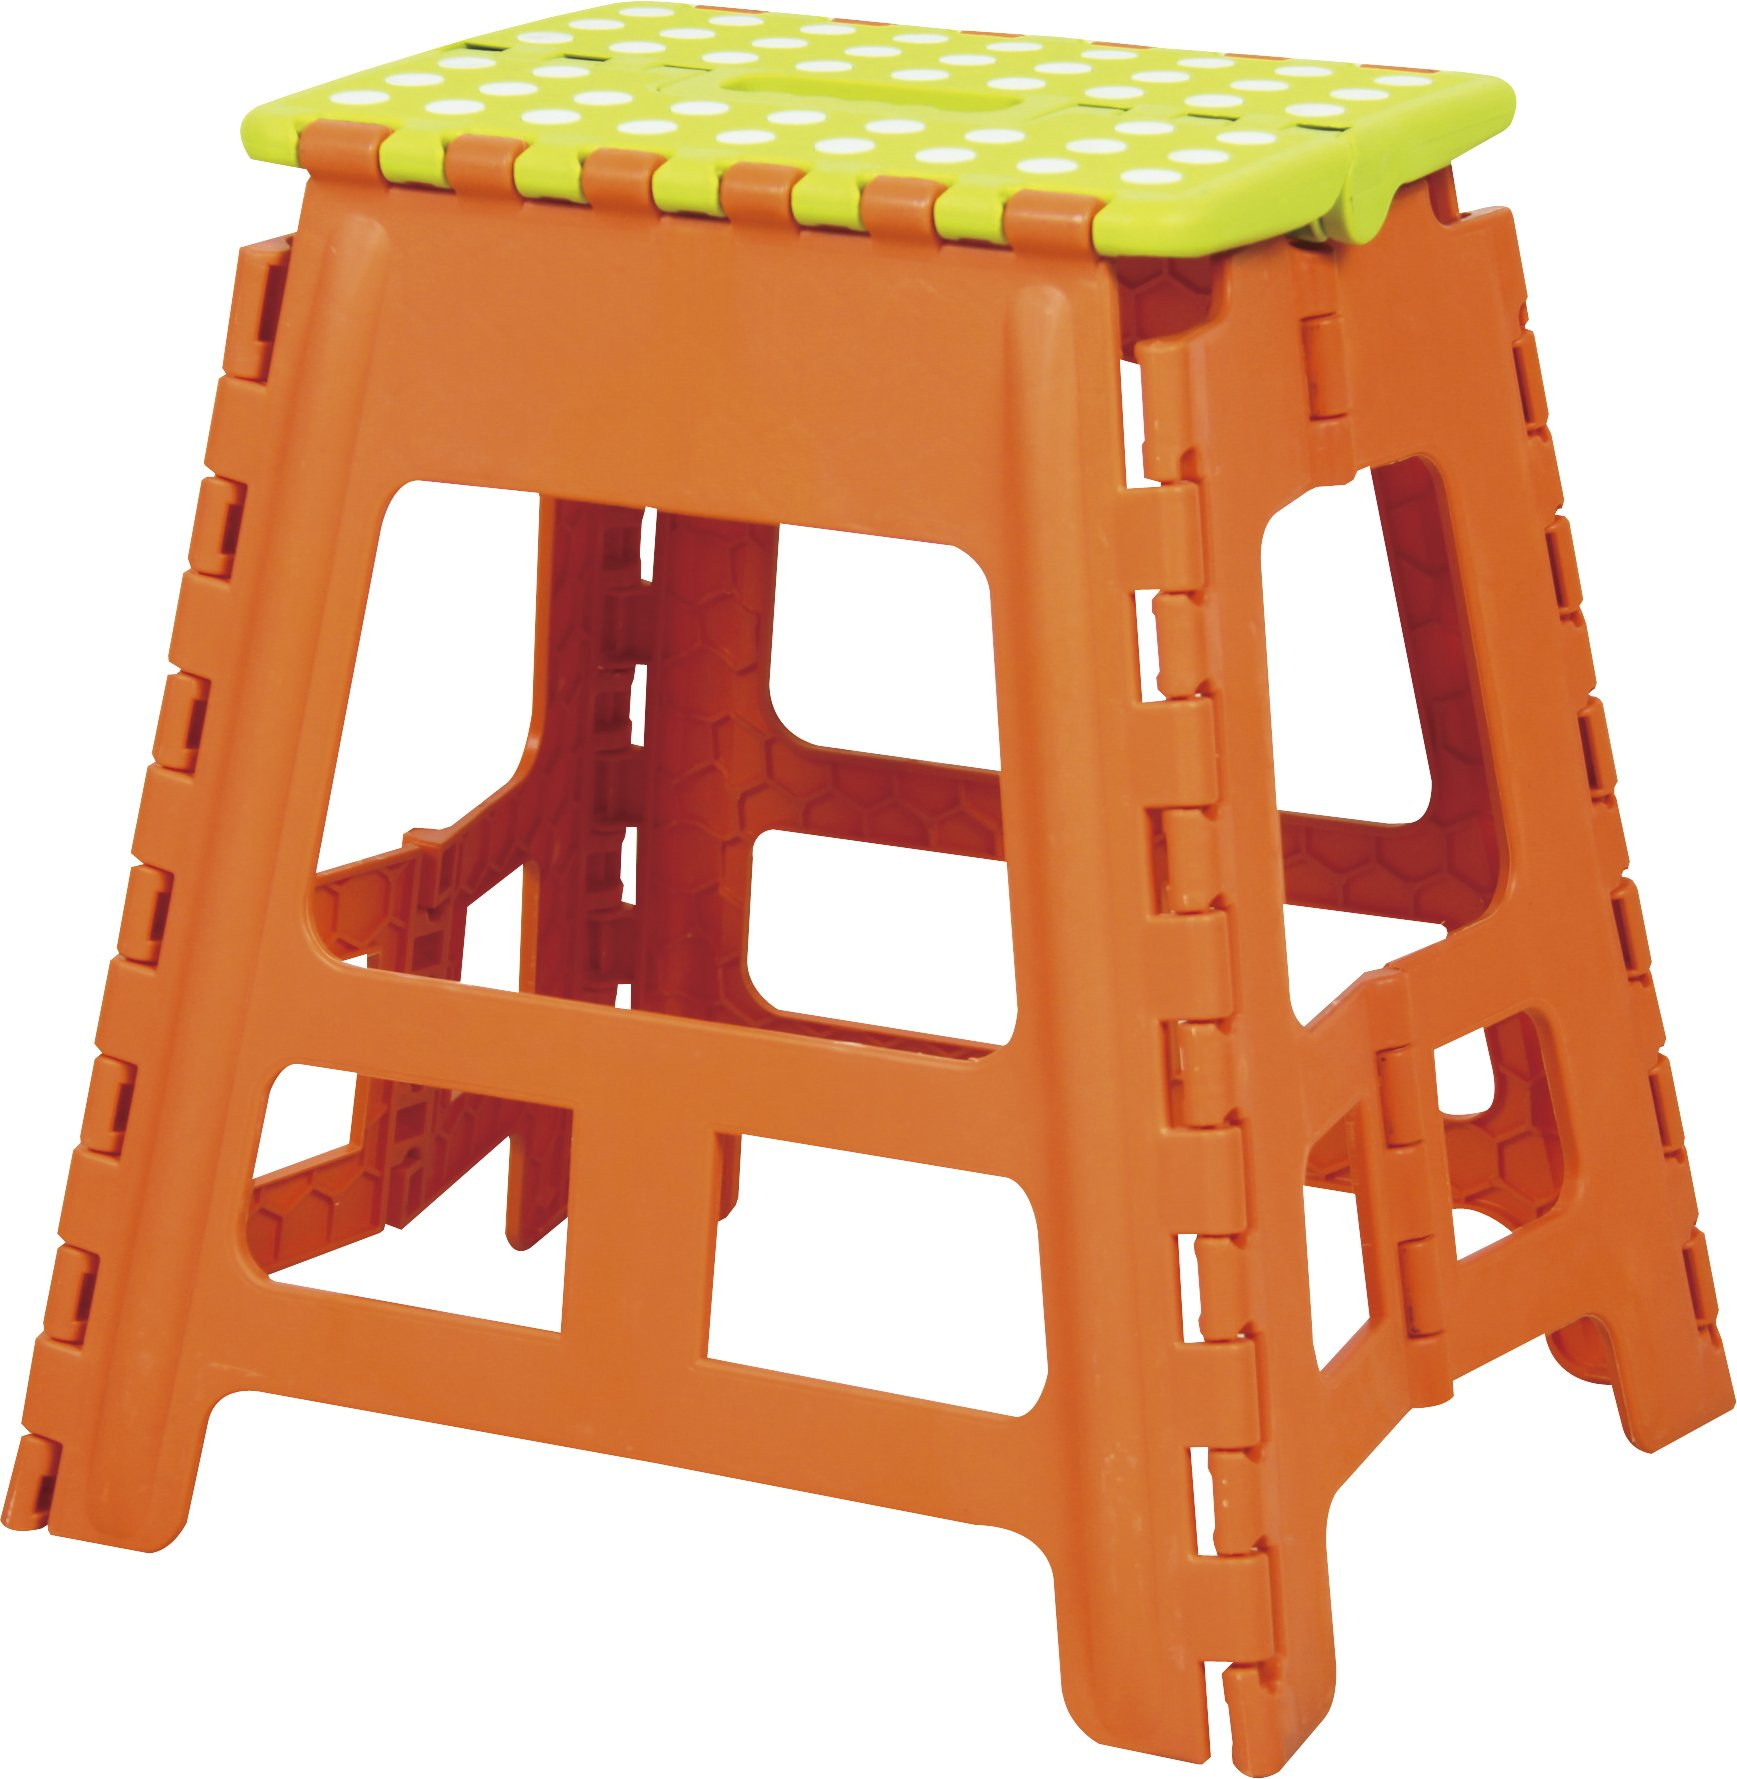 AZUMAYA Folding Step Stool Green 15'' High BLC-312OR